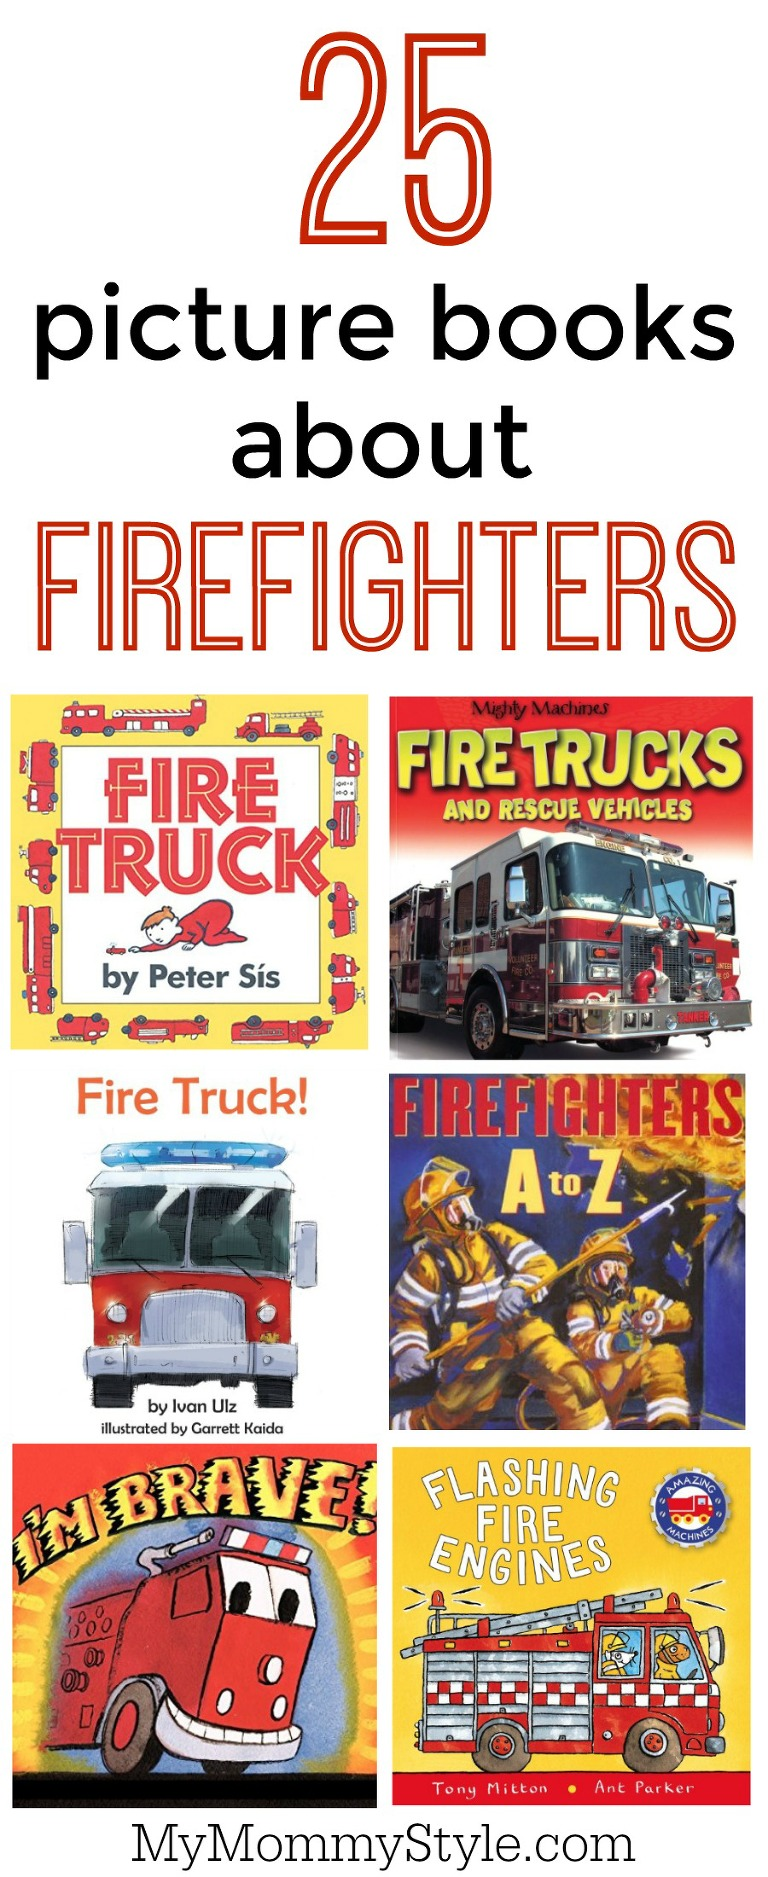 25 picture books about firefighters